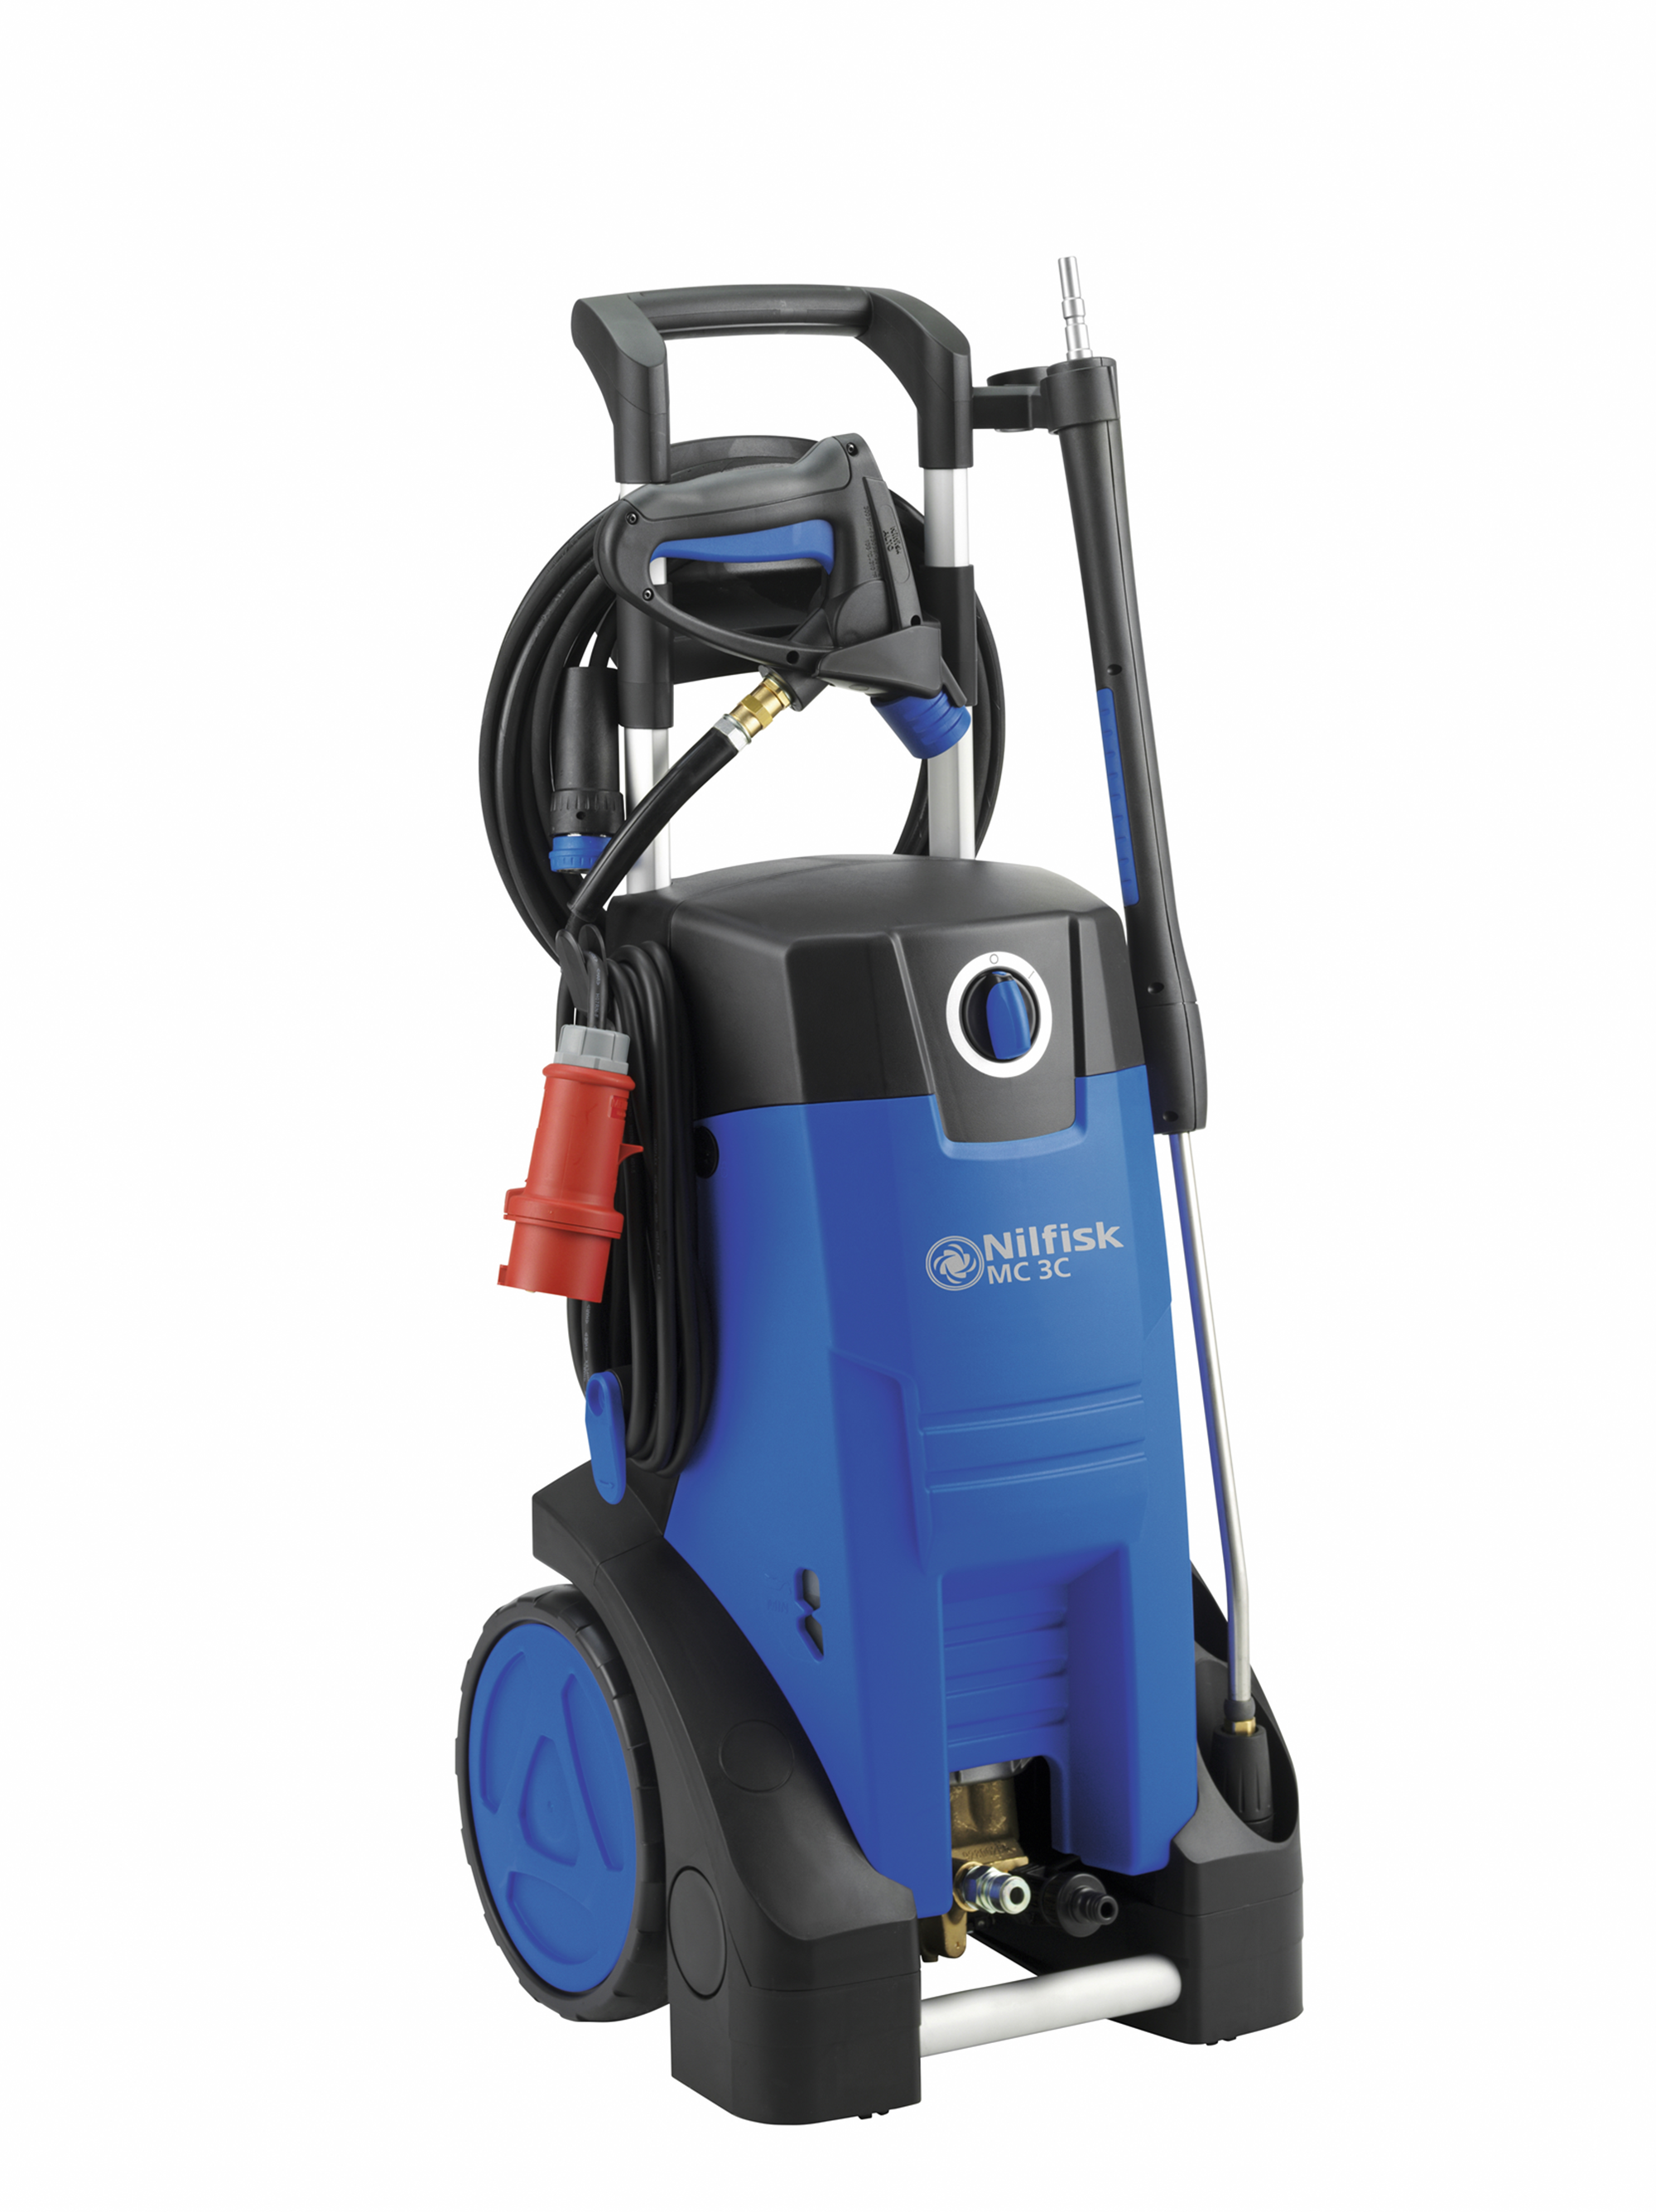 Product, Pressure washers, Mobile pressure washers, Mobile cold water pressure washers, Compact, Nilfisk, MC 3C-150/660XT